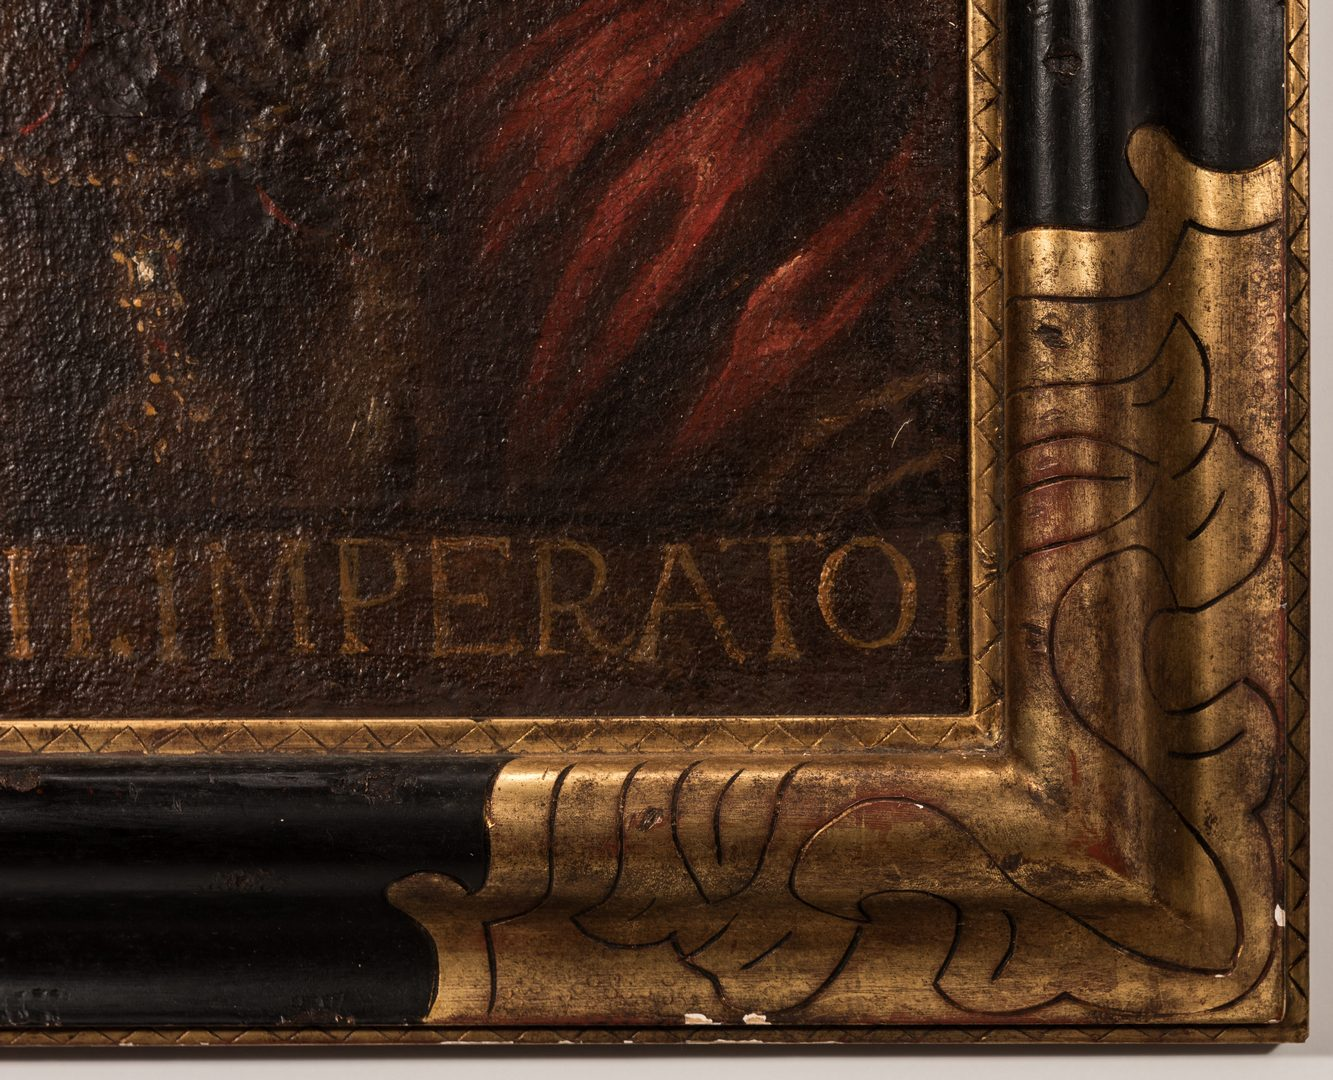 Lot 311: Portrait of Ferdinando III Imperator